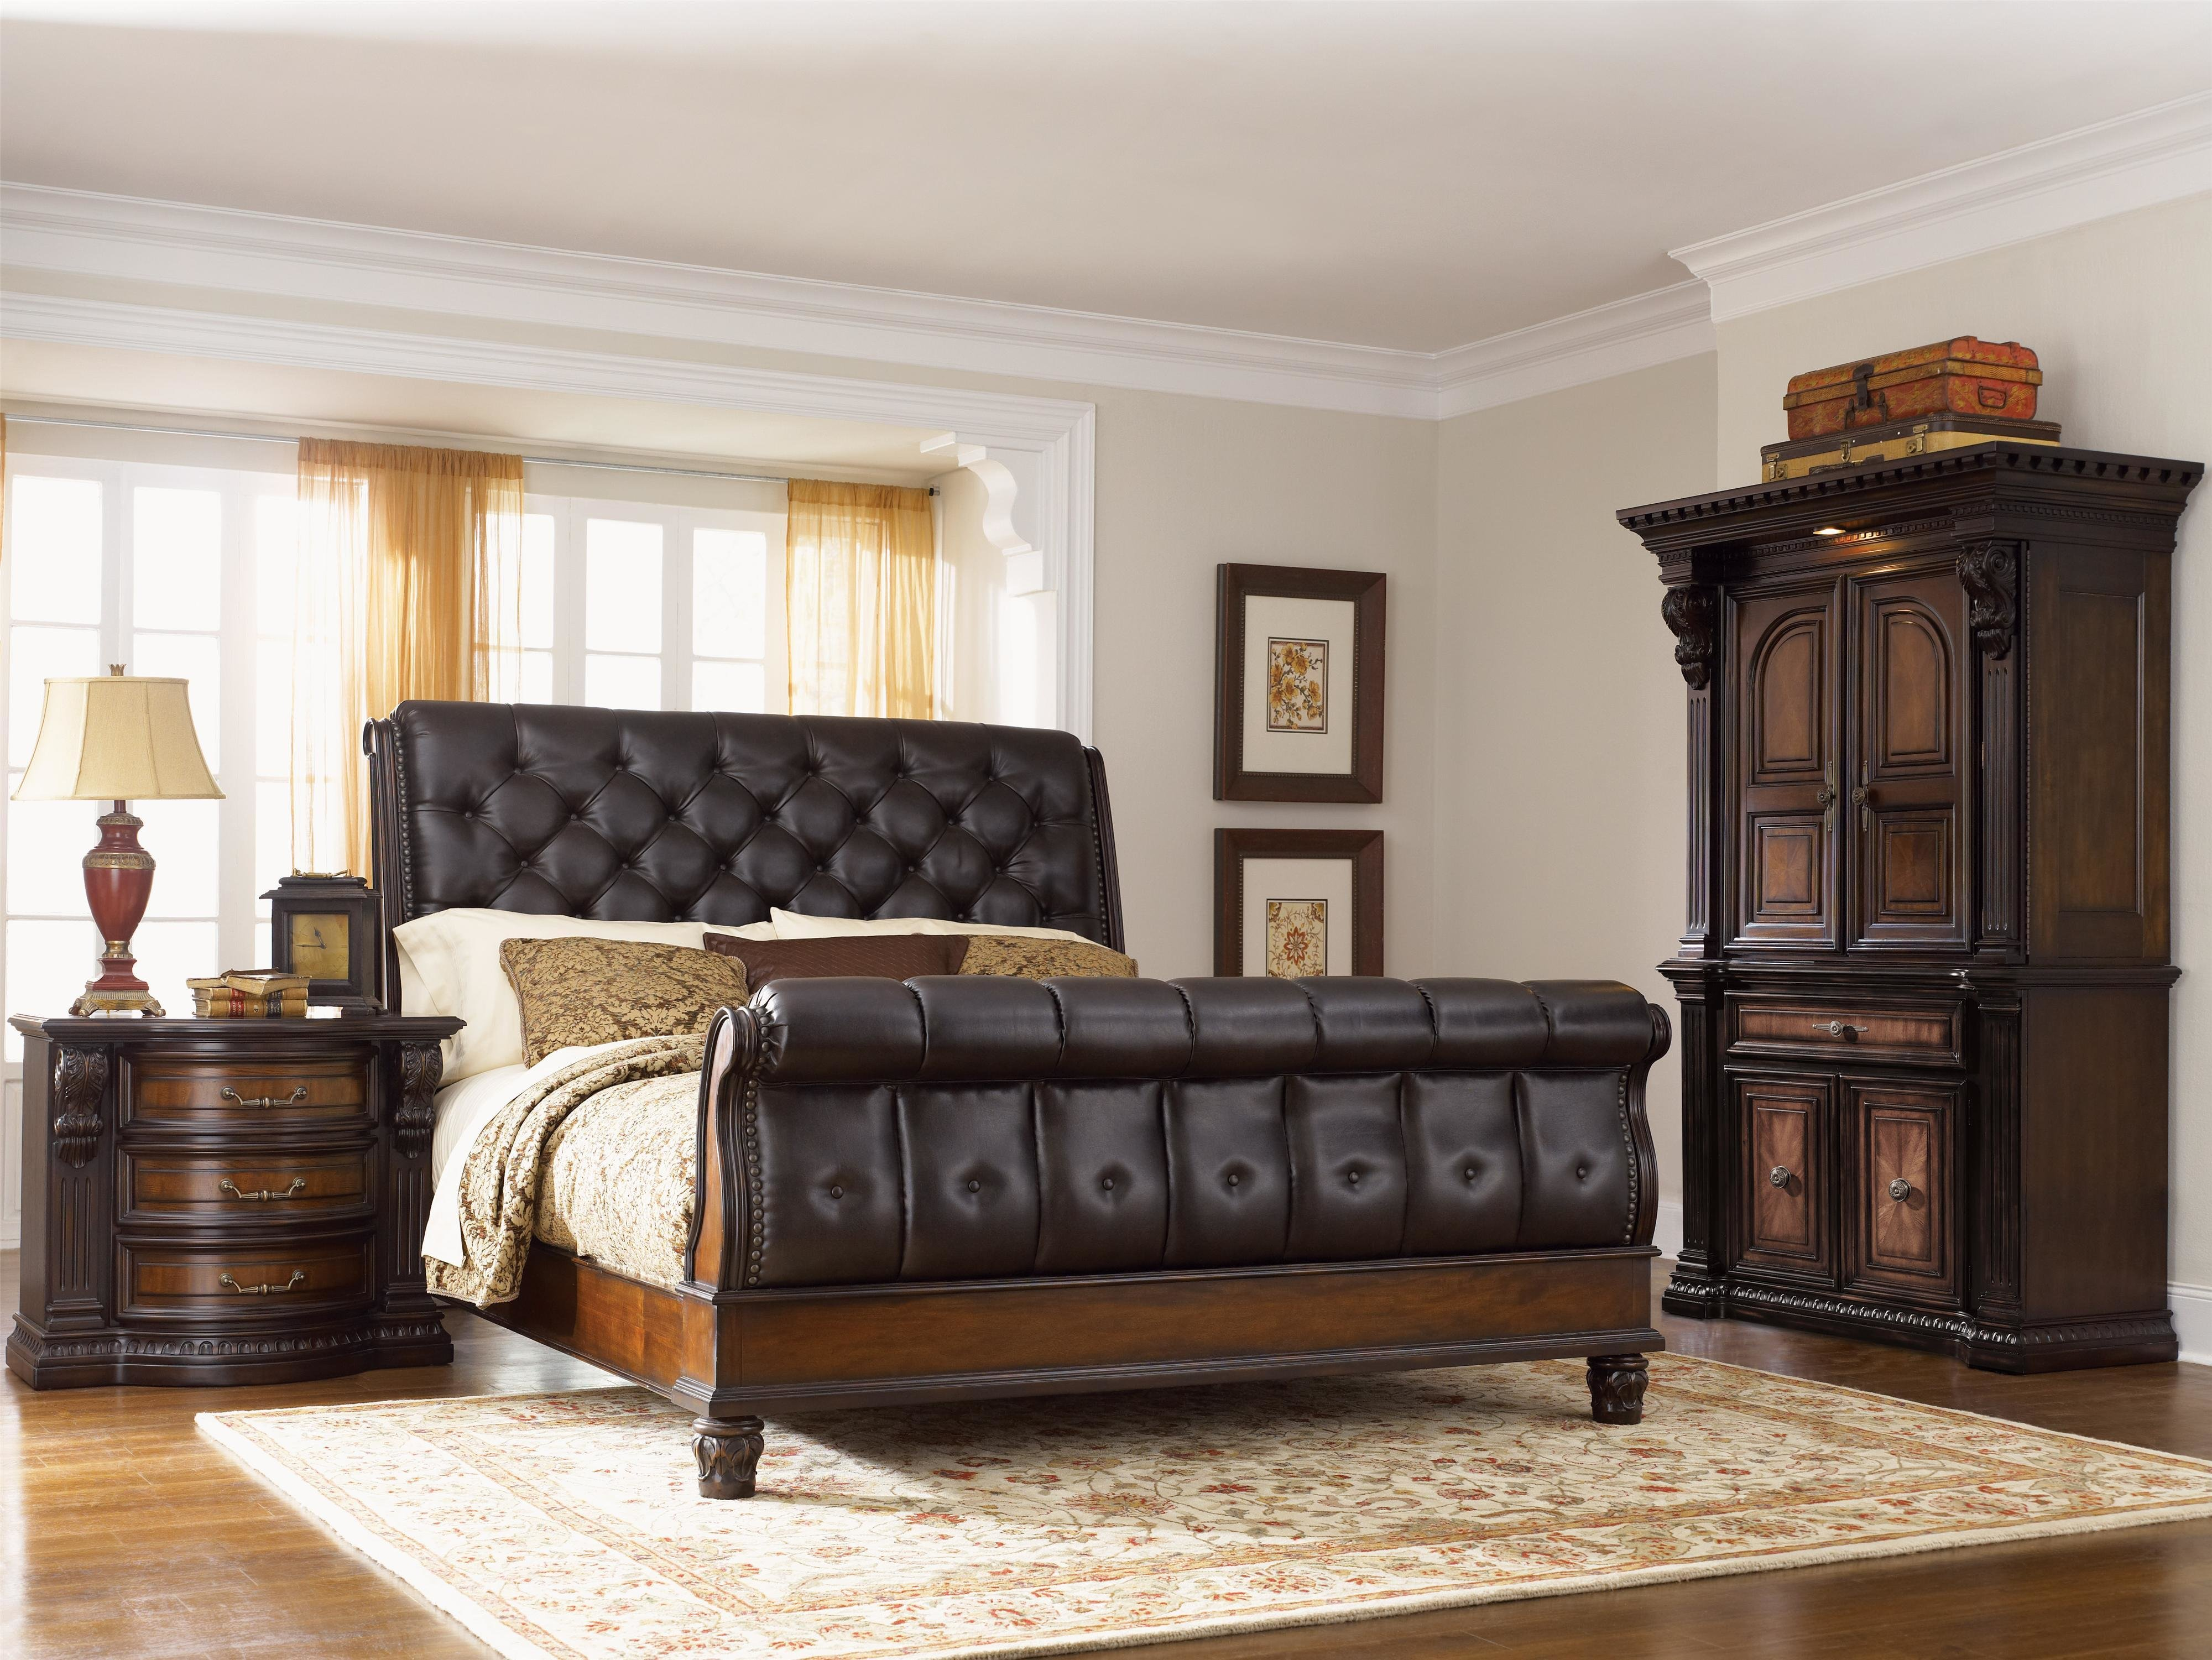 Best Grand Estates 02 By Fairmont Designs Royal Furniture Fairmont Designs Grand Estates Dealer With Pictures